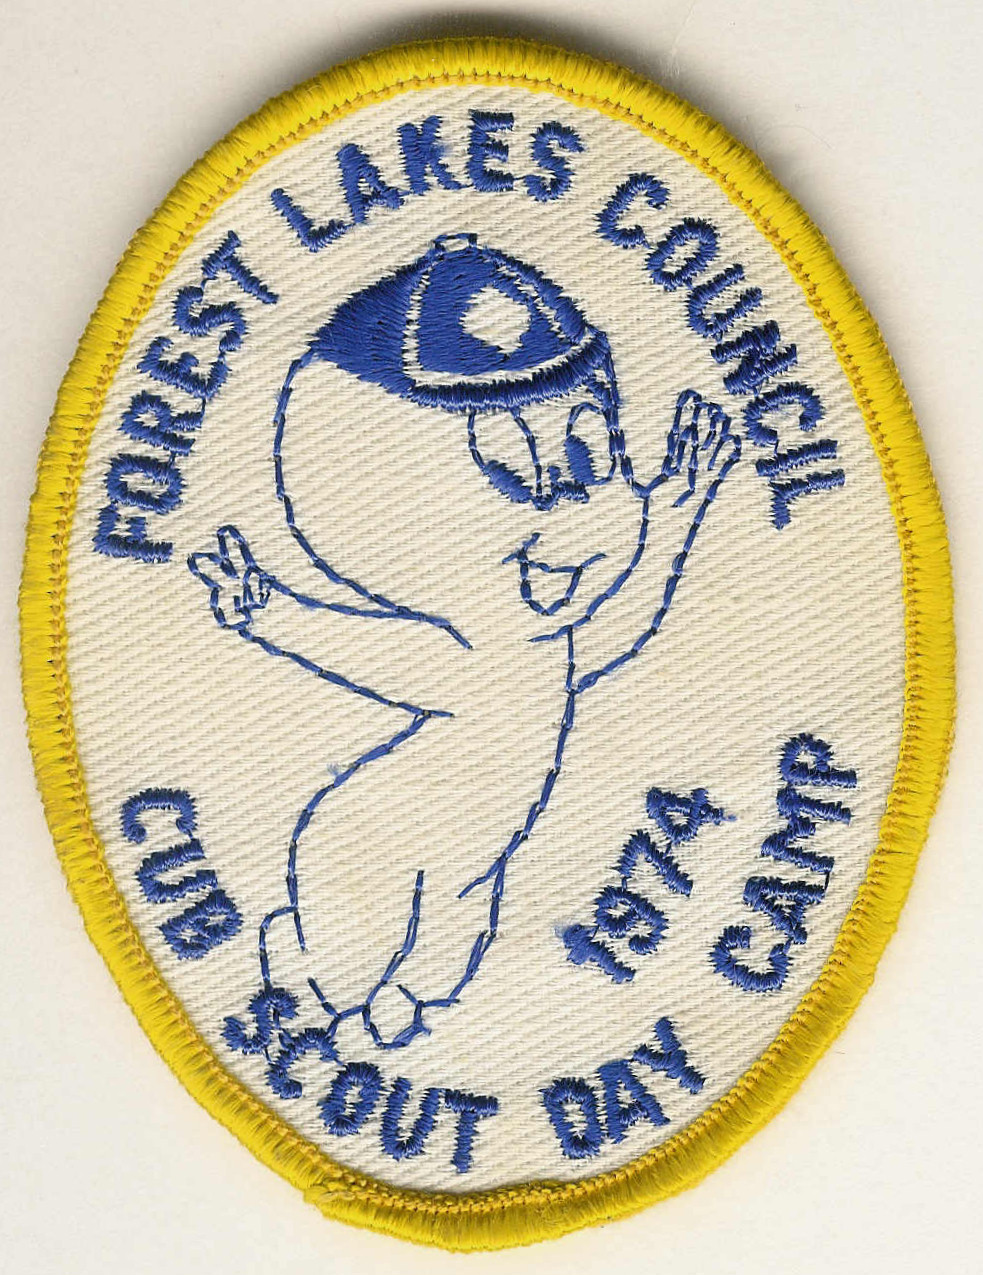 1974 FOREST LAKES COUNCIL - Cub Scout Day Camp - Casper